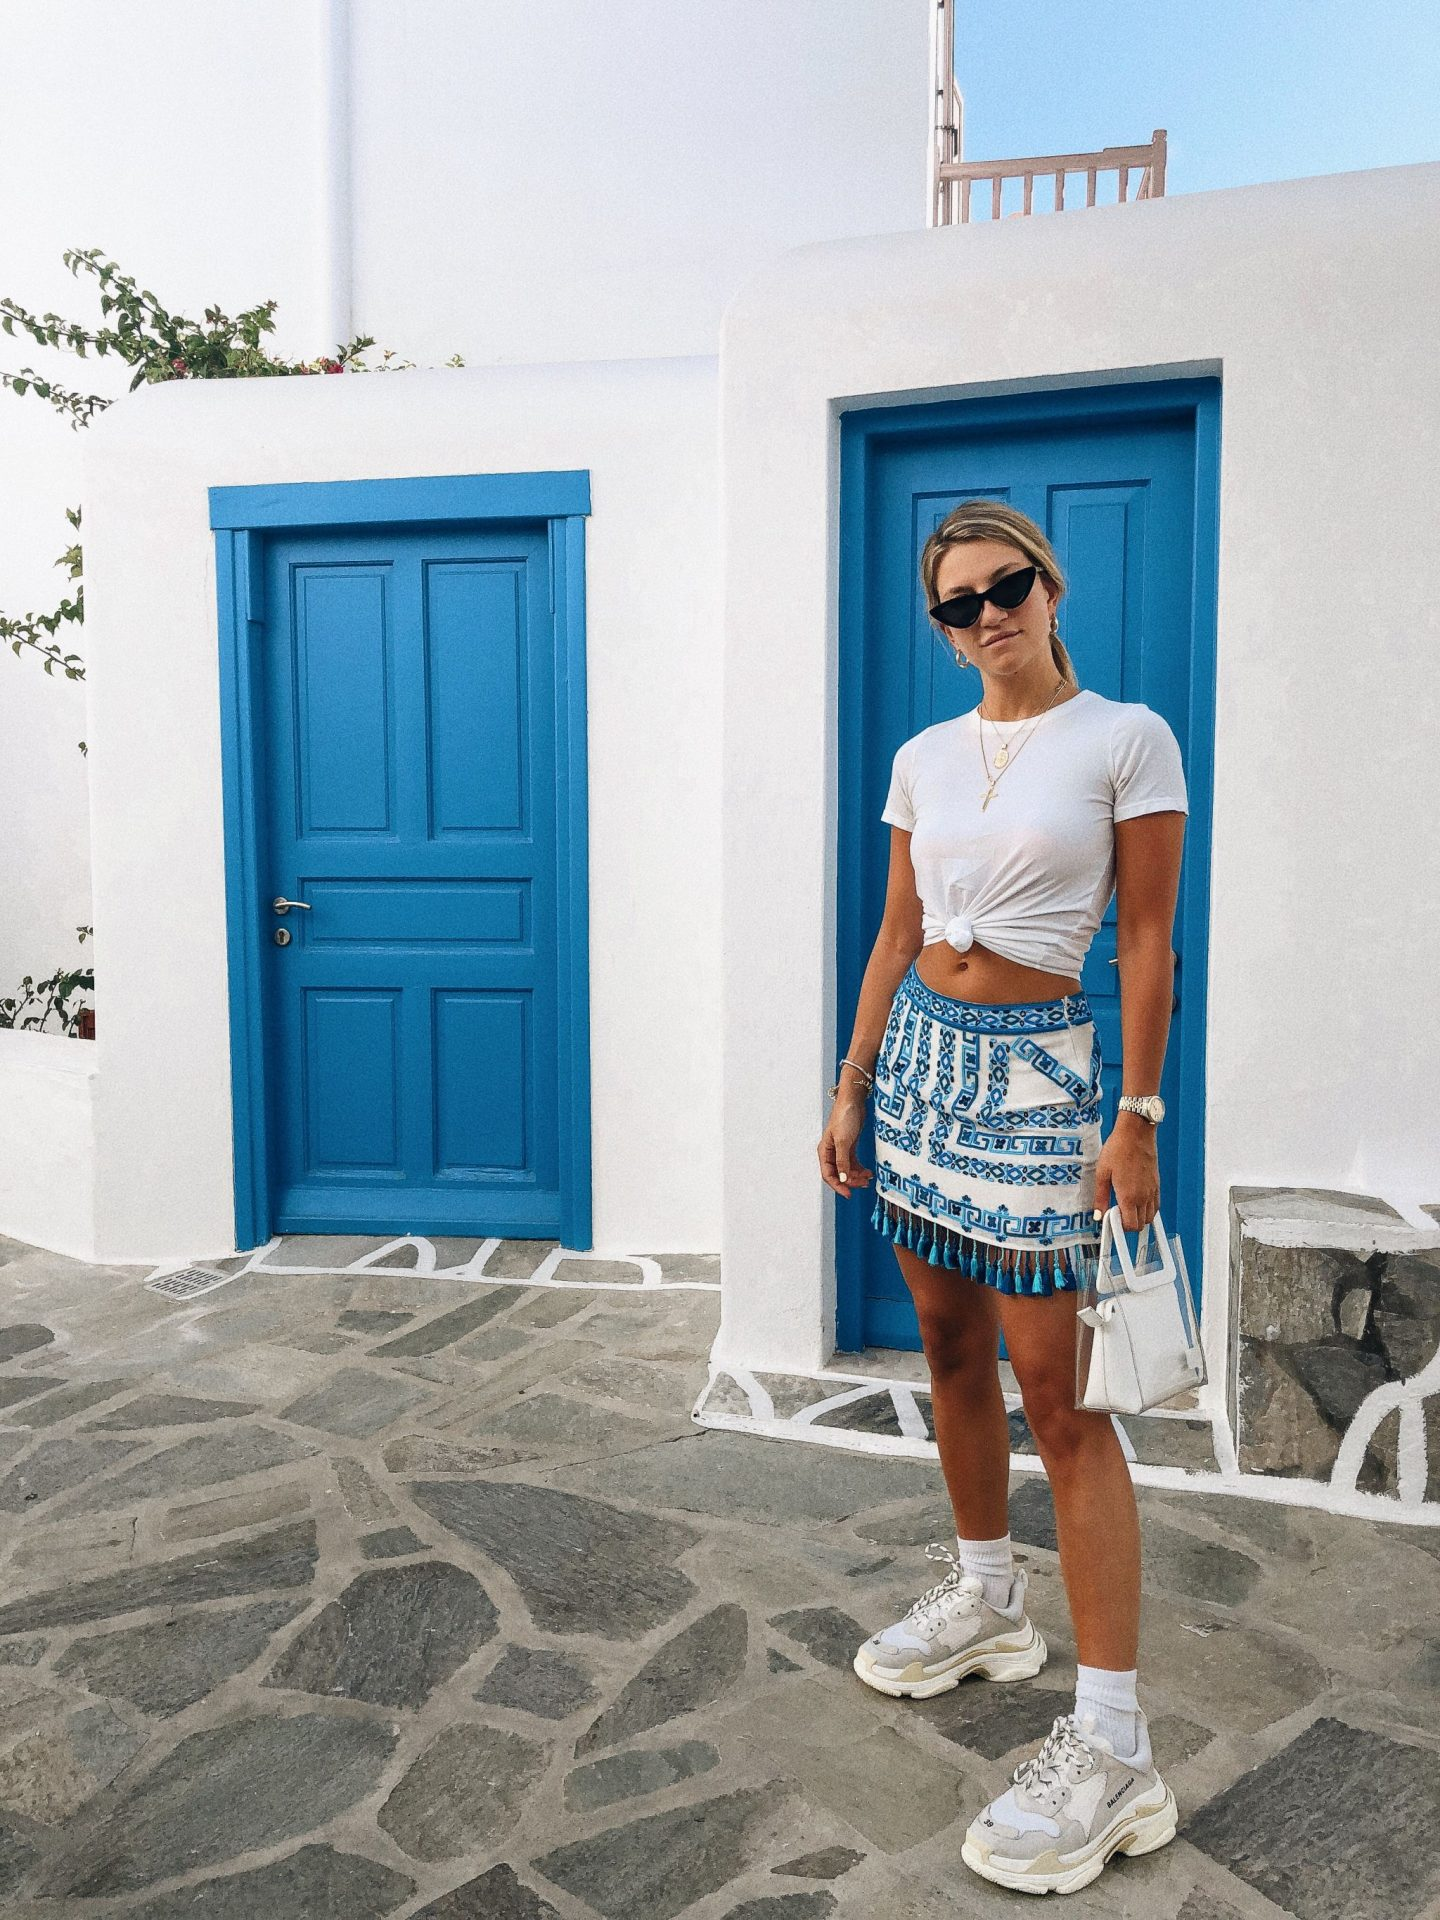 Cassandra DiMicco, Cass DiMicco, Dressed For Dreams, NYC, New York City, New York, Street Style NYC, Street Style 2018, NYC Street Style Street Style Outfits, 2018 Trends, Summer Style, Summer Outfit Inspo, Europe Outfit Inspo, NYC Fashion Blogger, Mykonos, Staud PVC Tote, Staud Shirley Leather PVC Tote, Rococo Sand Skirt, Le Specs, Le Specs The Last Lolita, Balenciaga Sneakers, Balenciaga Triple S Sneakers